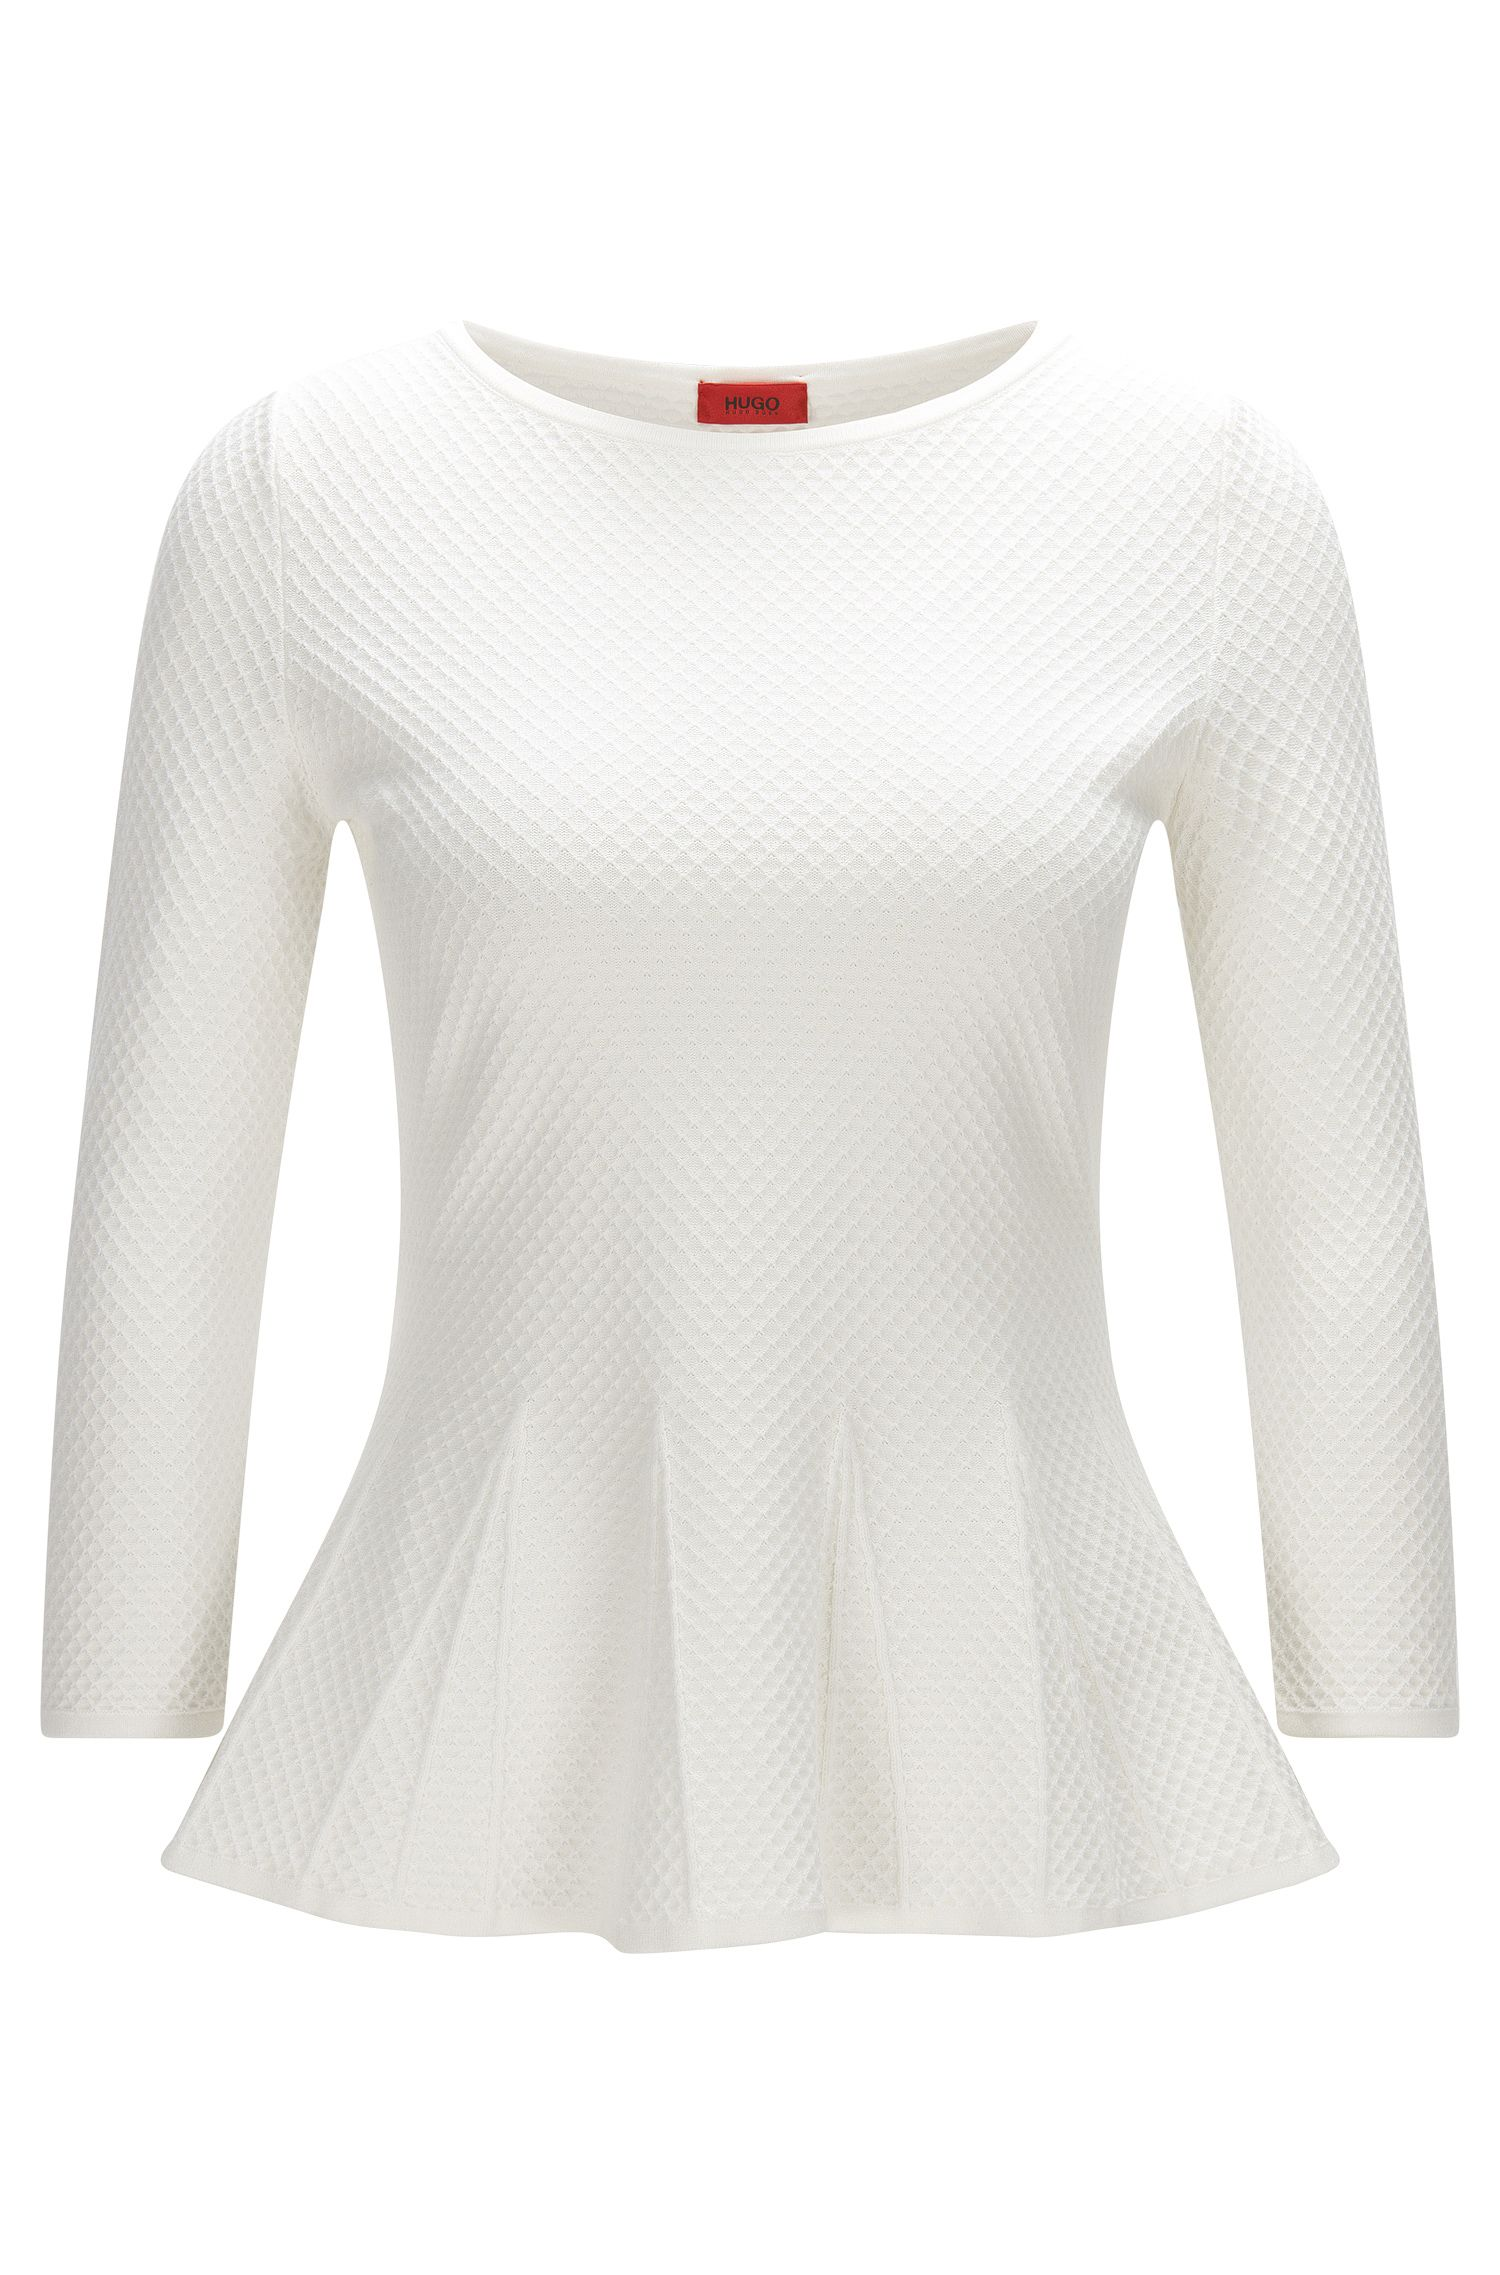 Crew-neck sweater with peplum detail